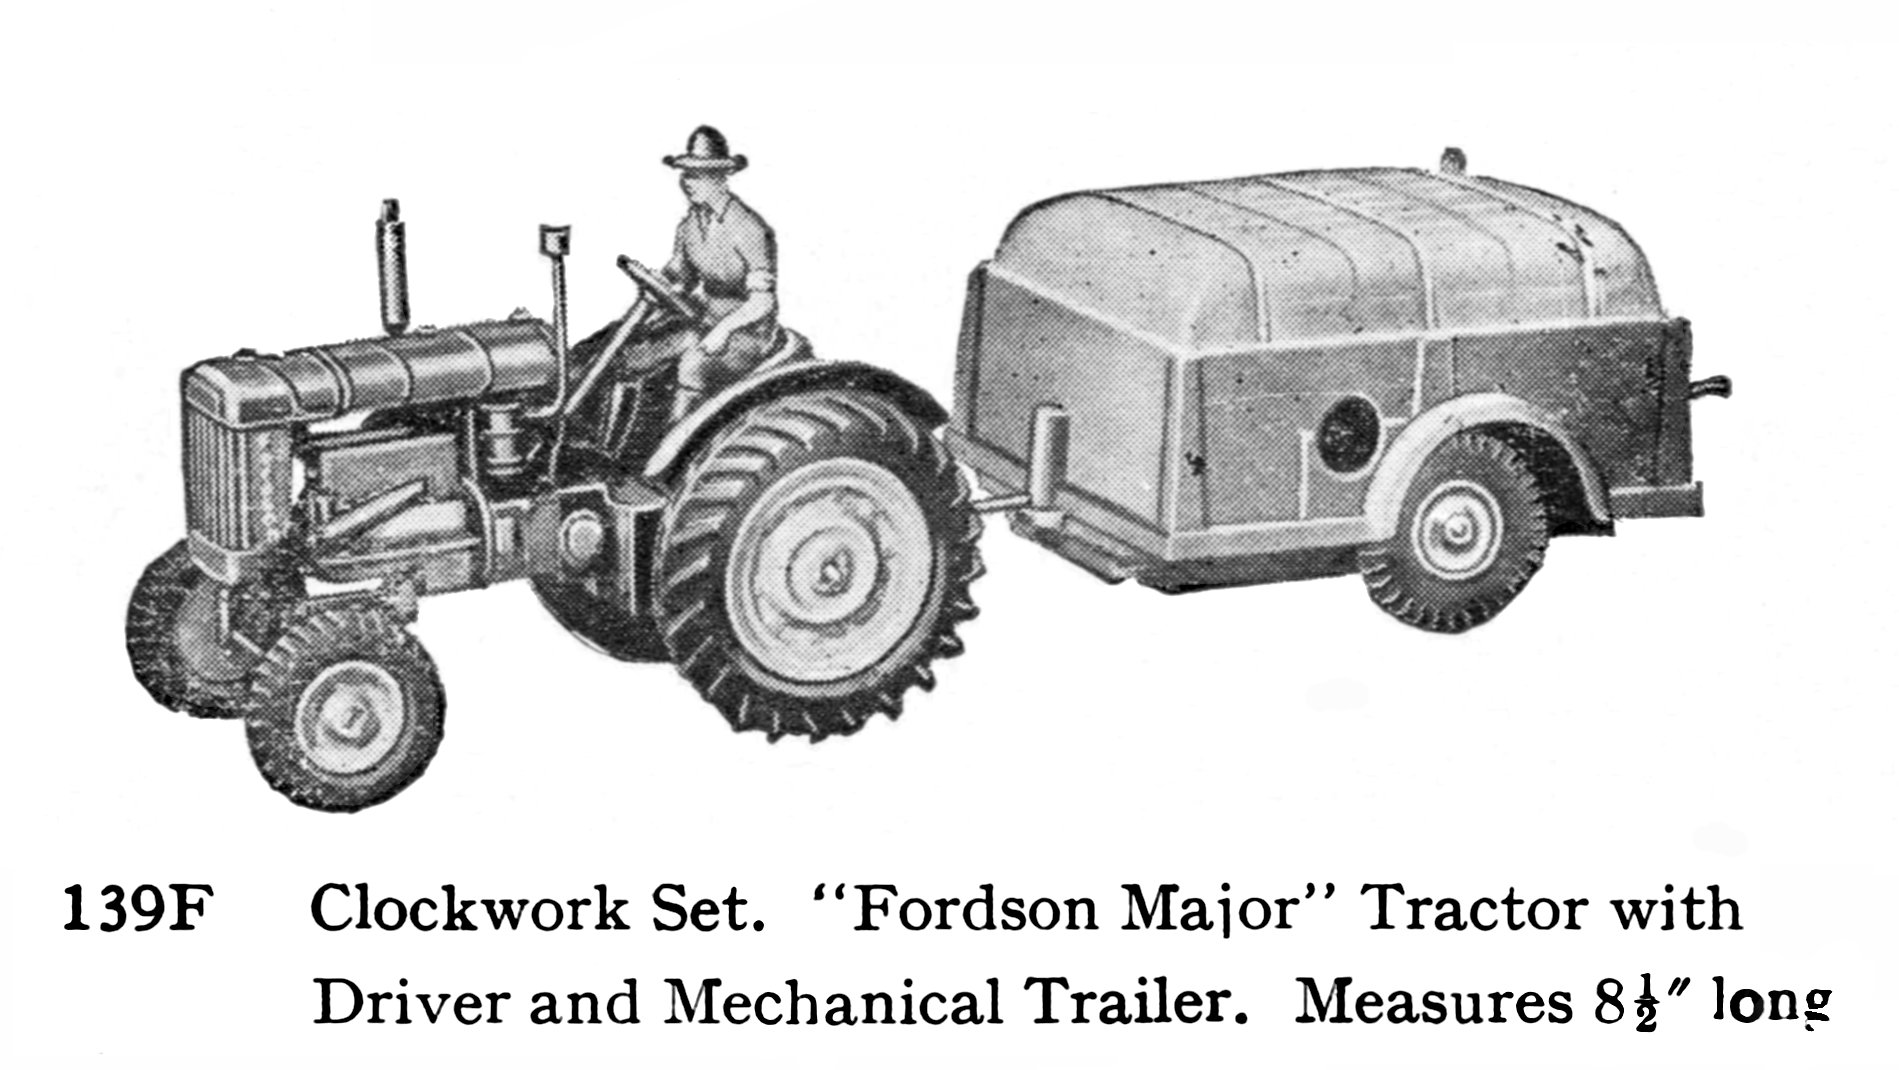 Fordson Major E27N Tractor Britains 128F The Brighton Toy and